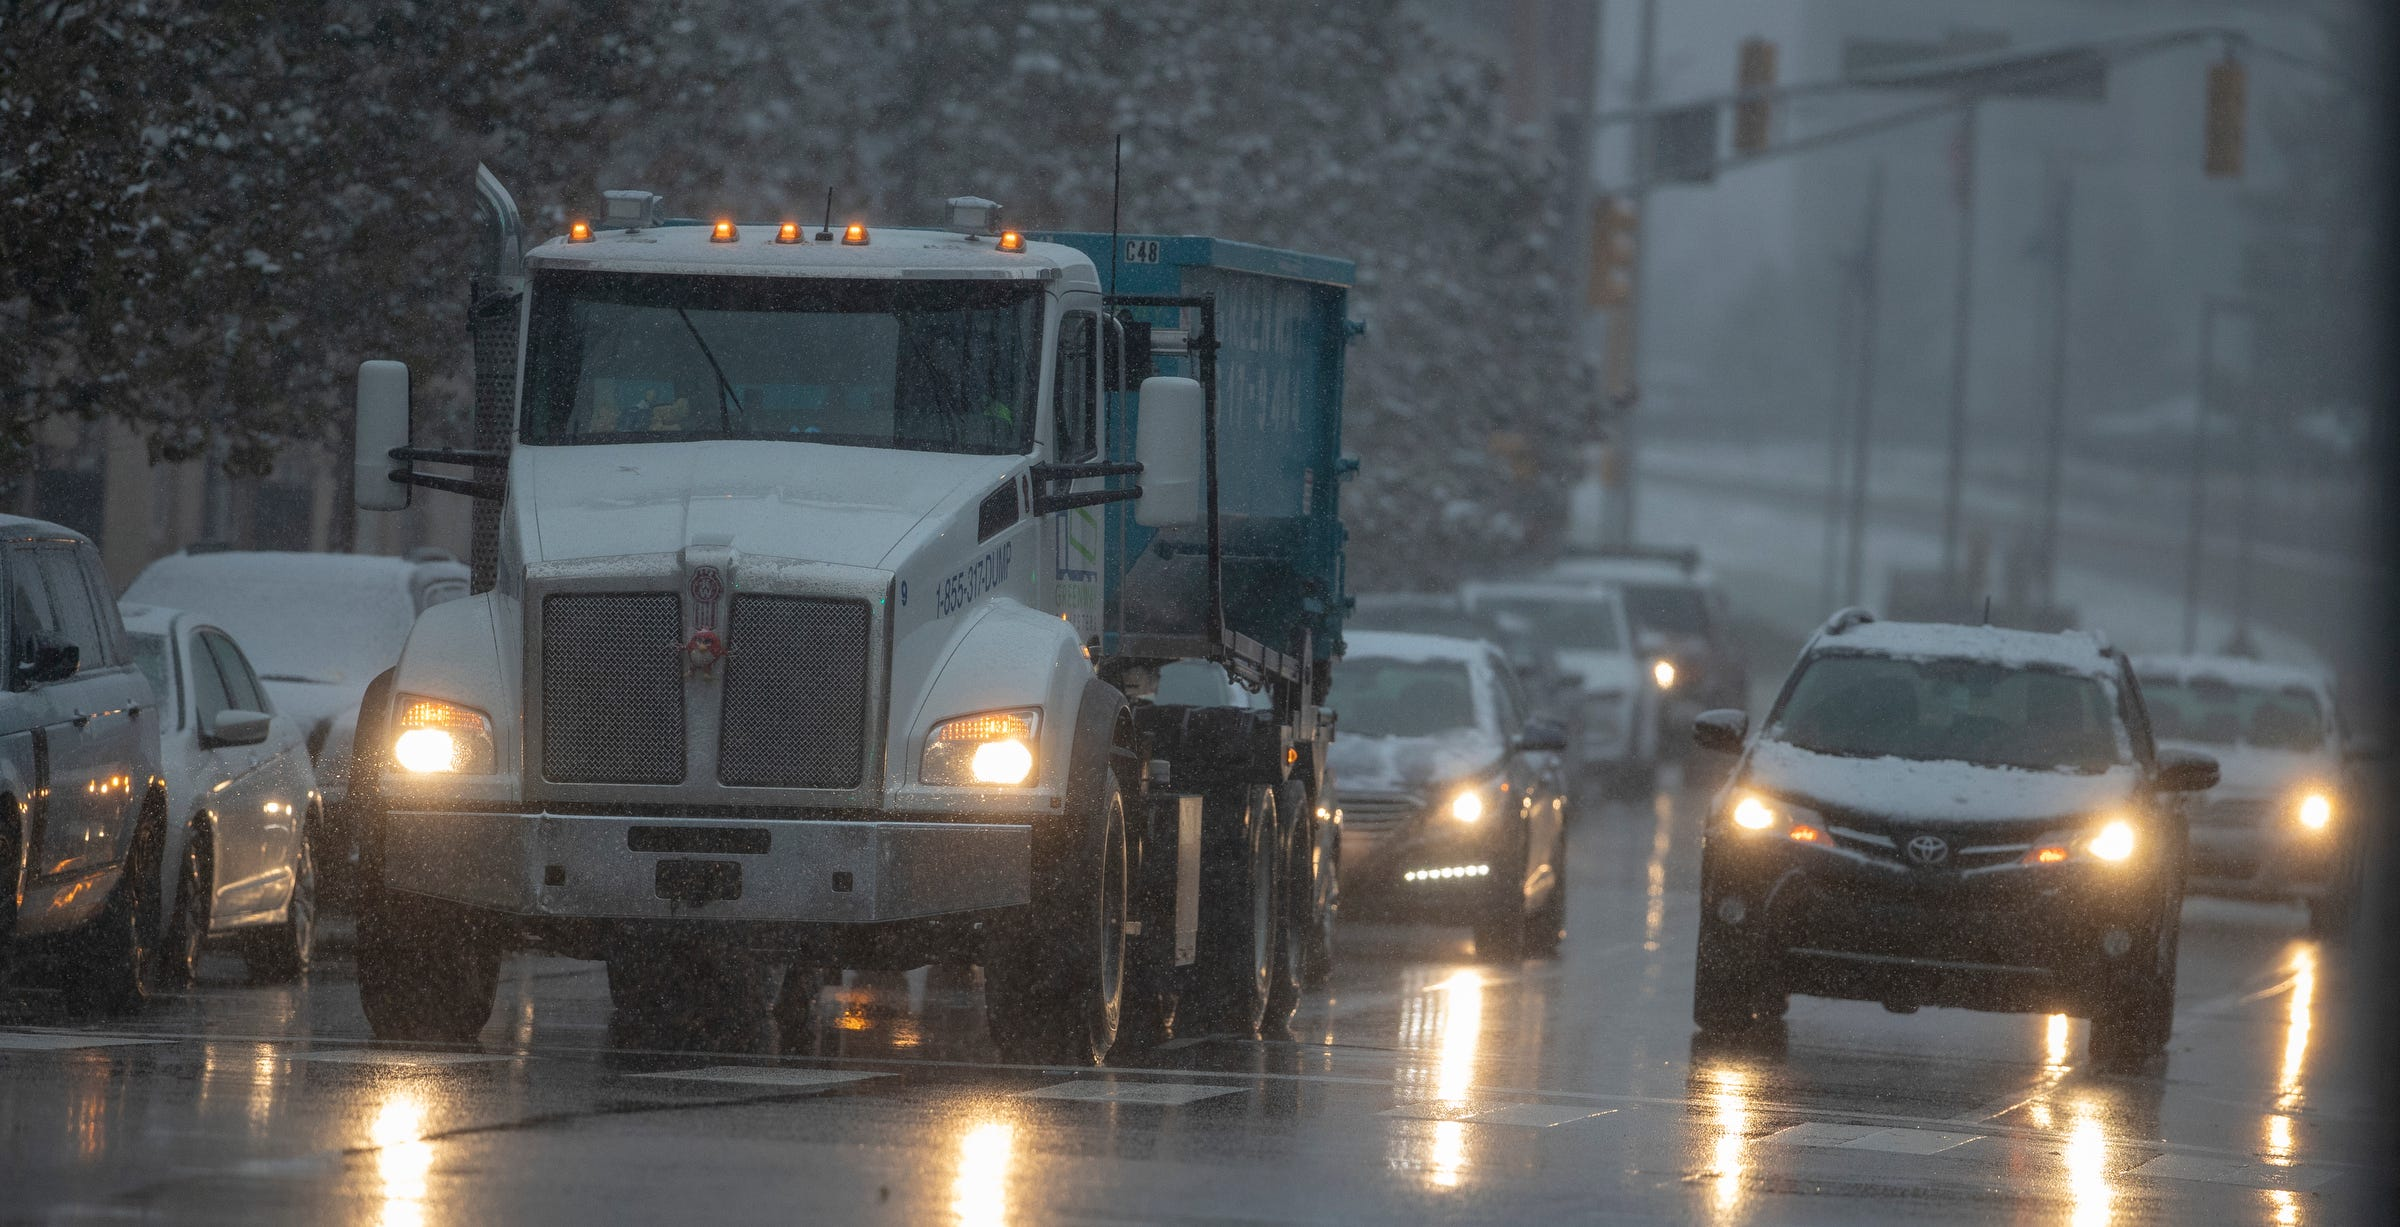 Indianapolis weather: Snow and freezing rain followed by slight warm-up in forecast